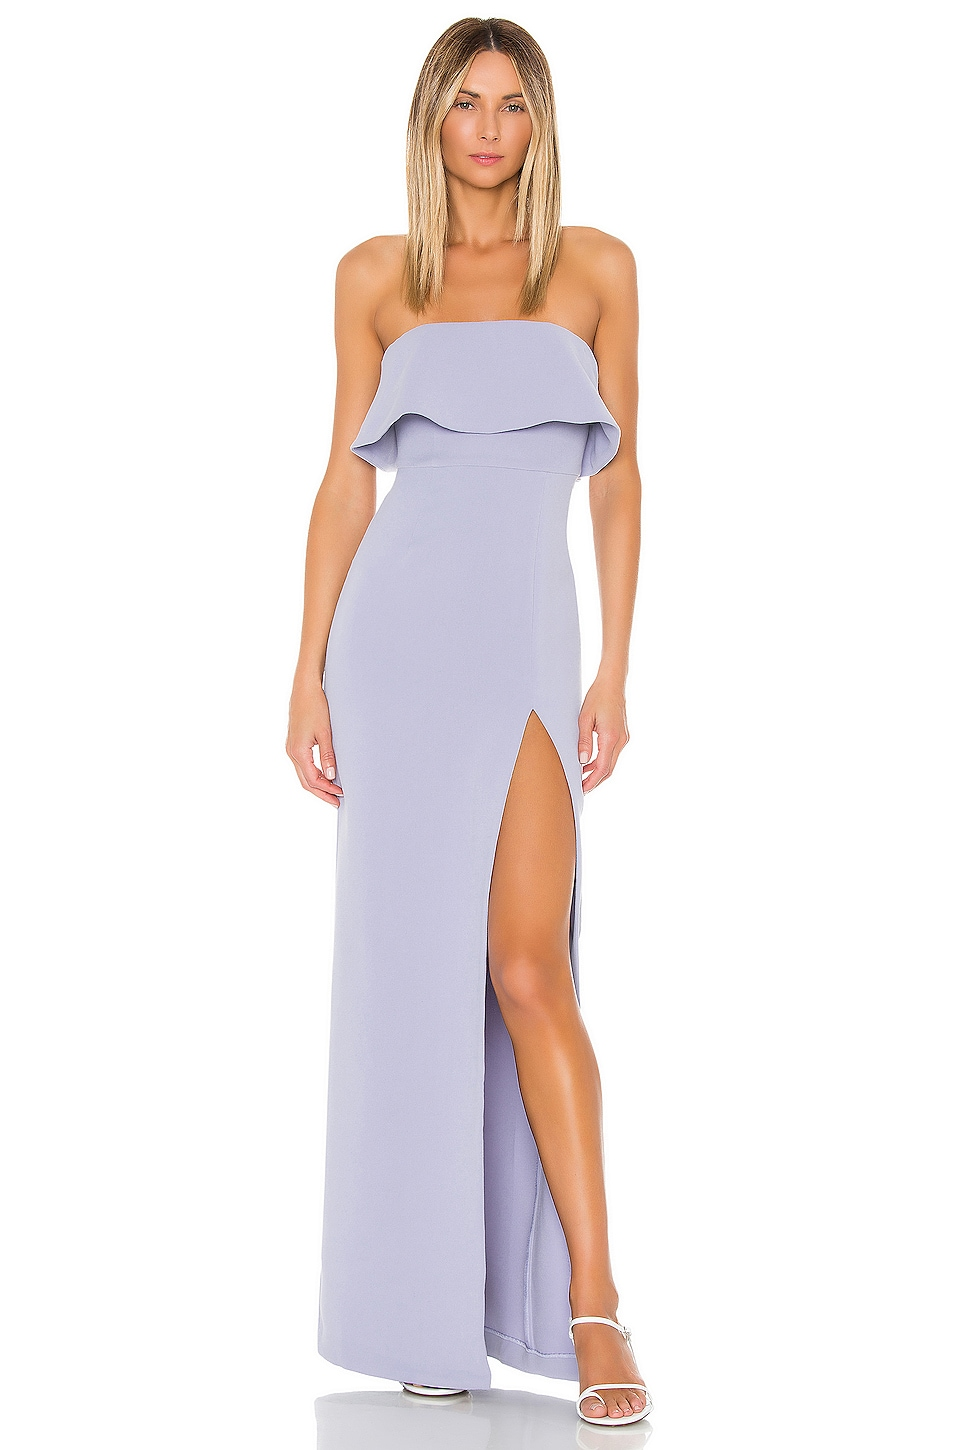 Lovers + Friends Tayshia Gown in Periwinkle